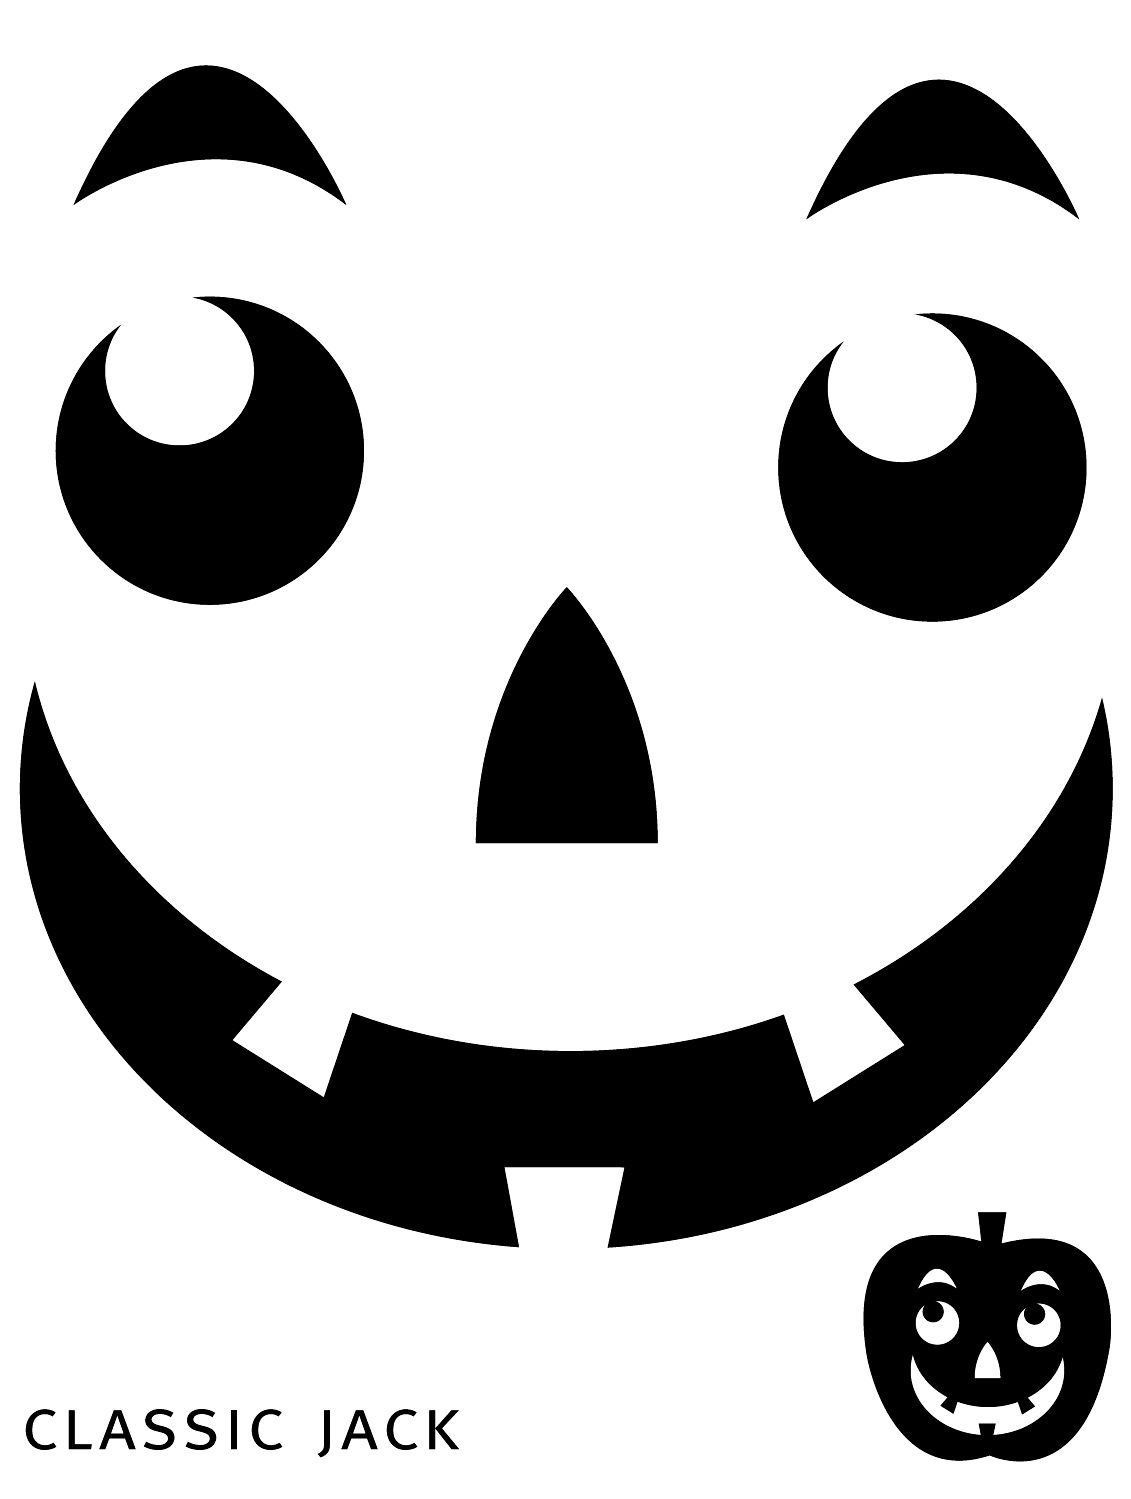 Free Printable Easy Funny Jack O Lantern Face Stencils Patterns - Free Printable Pumpkin Carving Templates